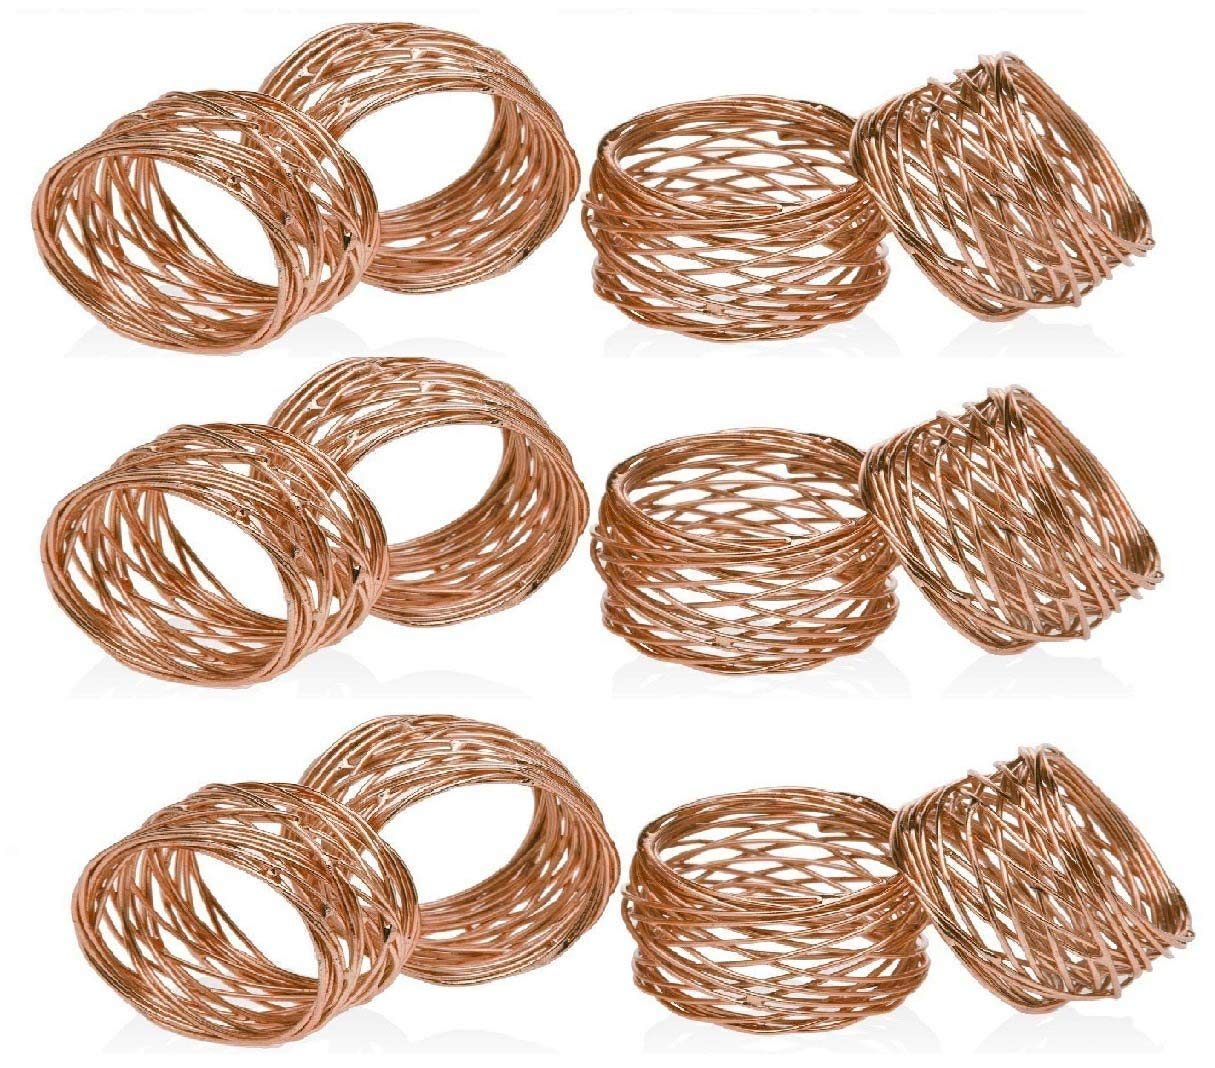 4, Copper ARTS HUB Round Mesh Napkin Rings Artisan Crafted in India